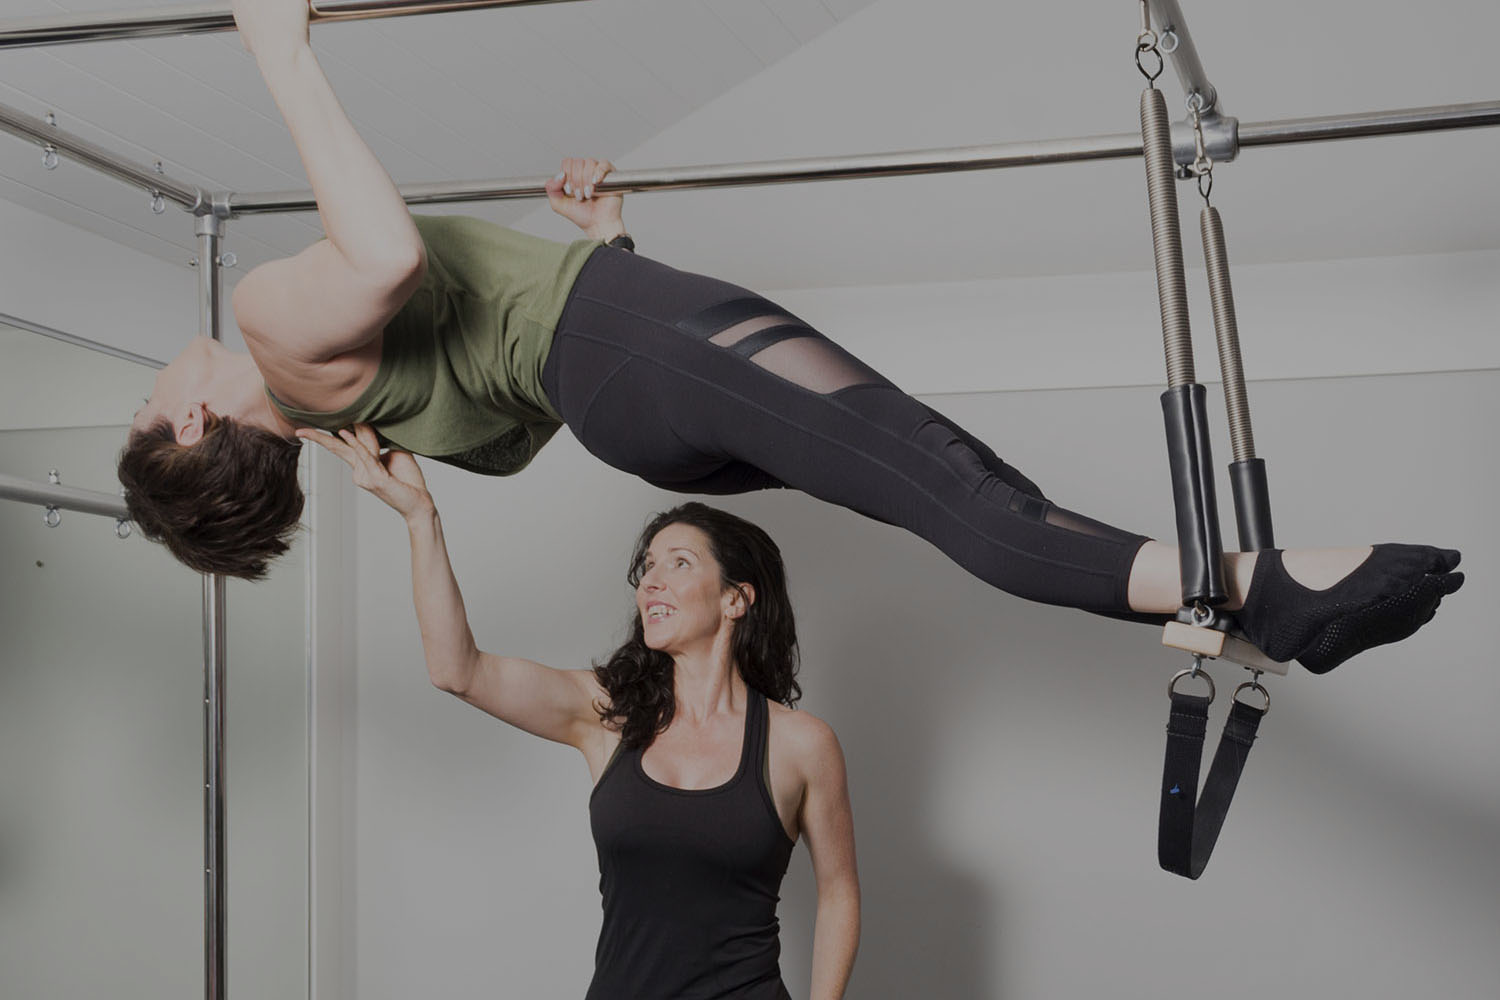 Studio PILATES - The traditional, equipment-based Pilates workout, Studio Pilates is customised to your needs, whether it's strengthening, rebalancing, re-shaping or rehabilitating.